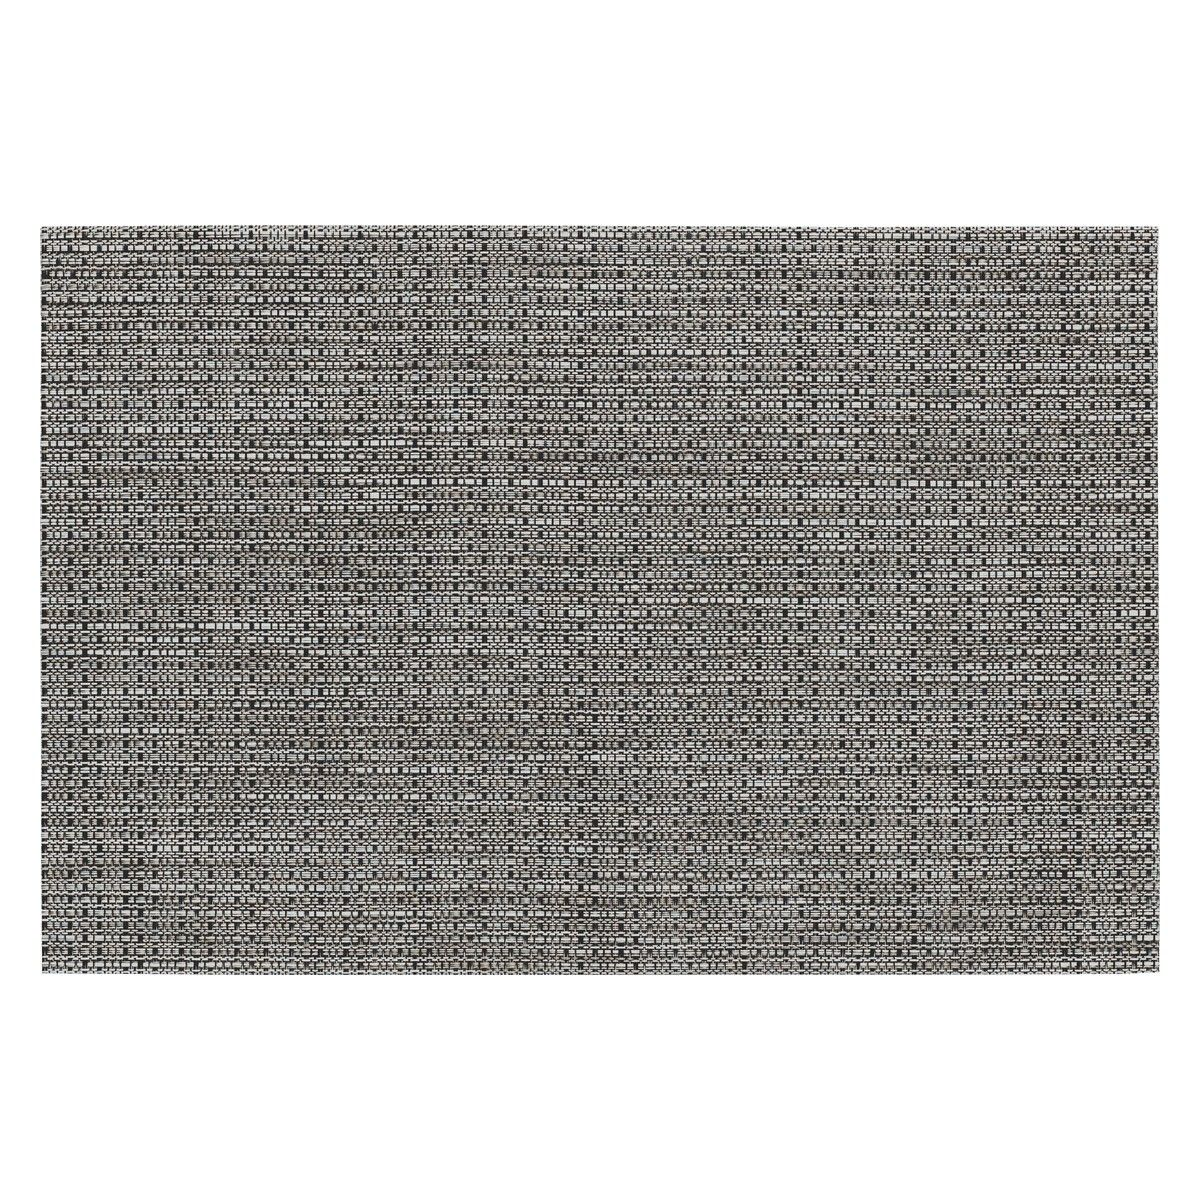 STIRLING Set of 4 grey woven placemats | Buy now at Habitat UK